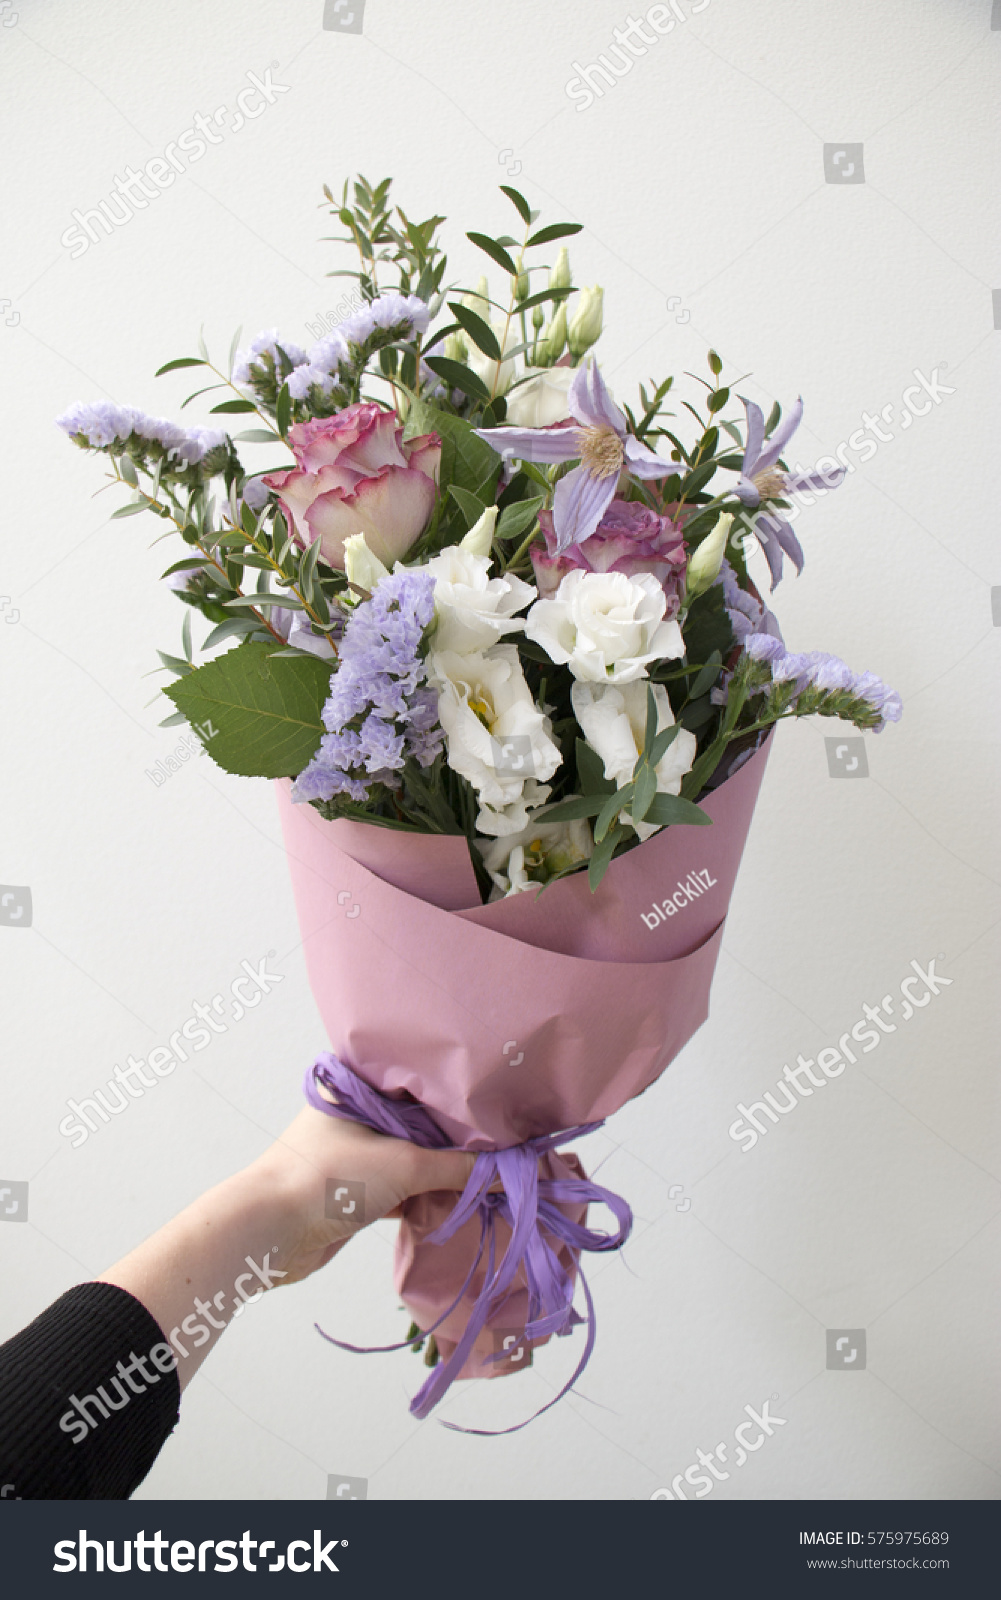 Bouquet Fresh Flowers Hand Stock Photo & Image (Royalty-Free ...